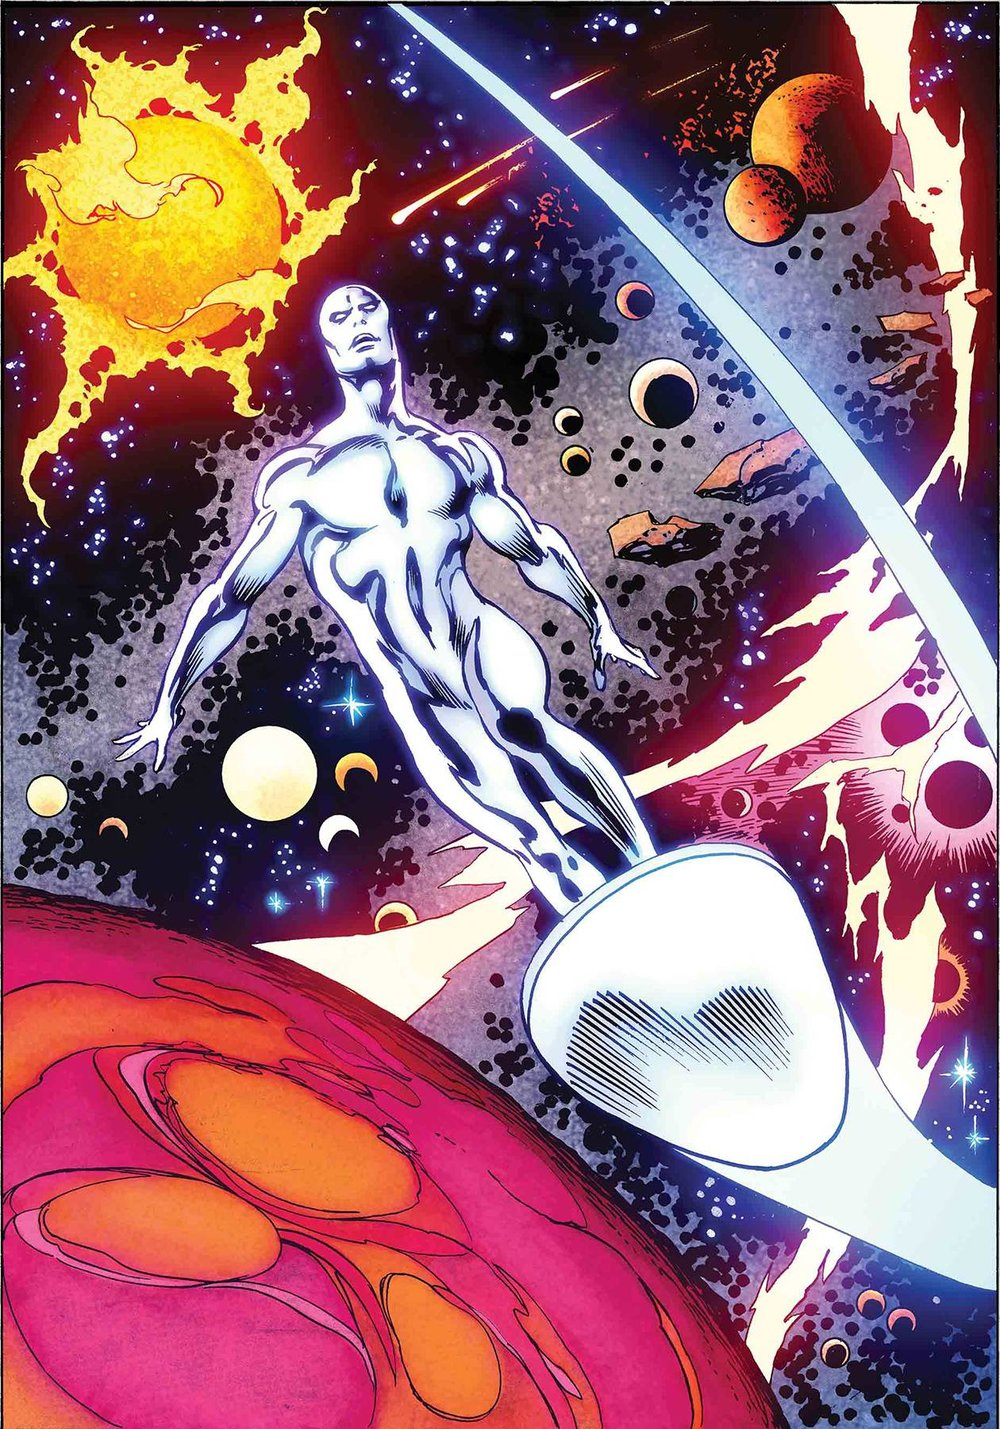 DEFENDERS SILVER SURFER 1 BUSCEMA REMASTERED VAR.jpg